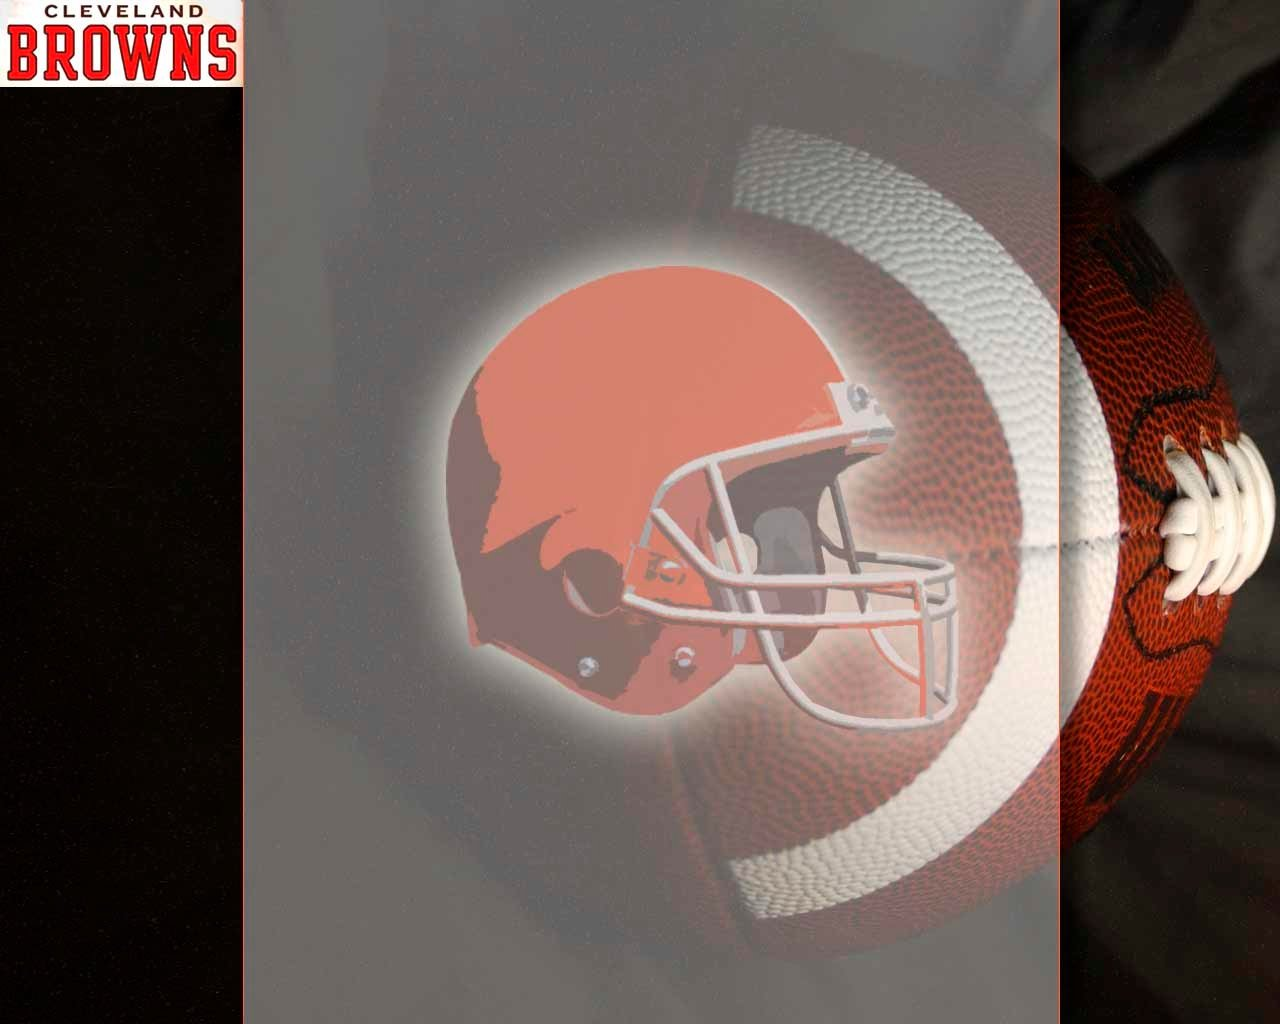 28 2010 cleveland browns wallpaper 29865 12 28 2010 cleveland browns 1280x1024